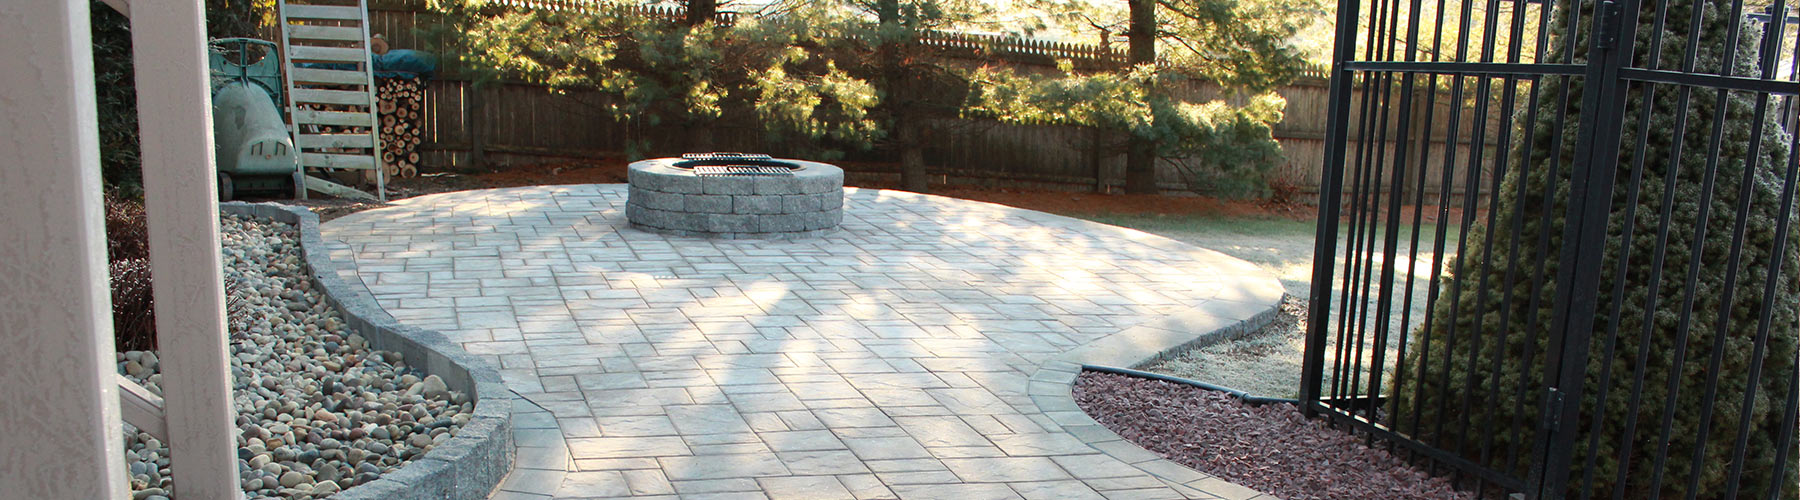 Stone Patio With Firepit